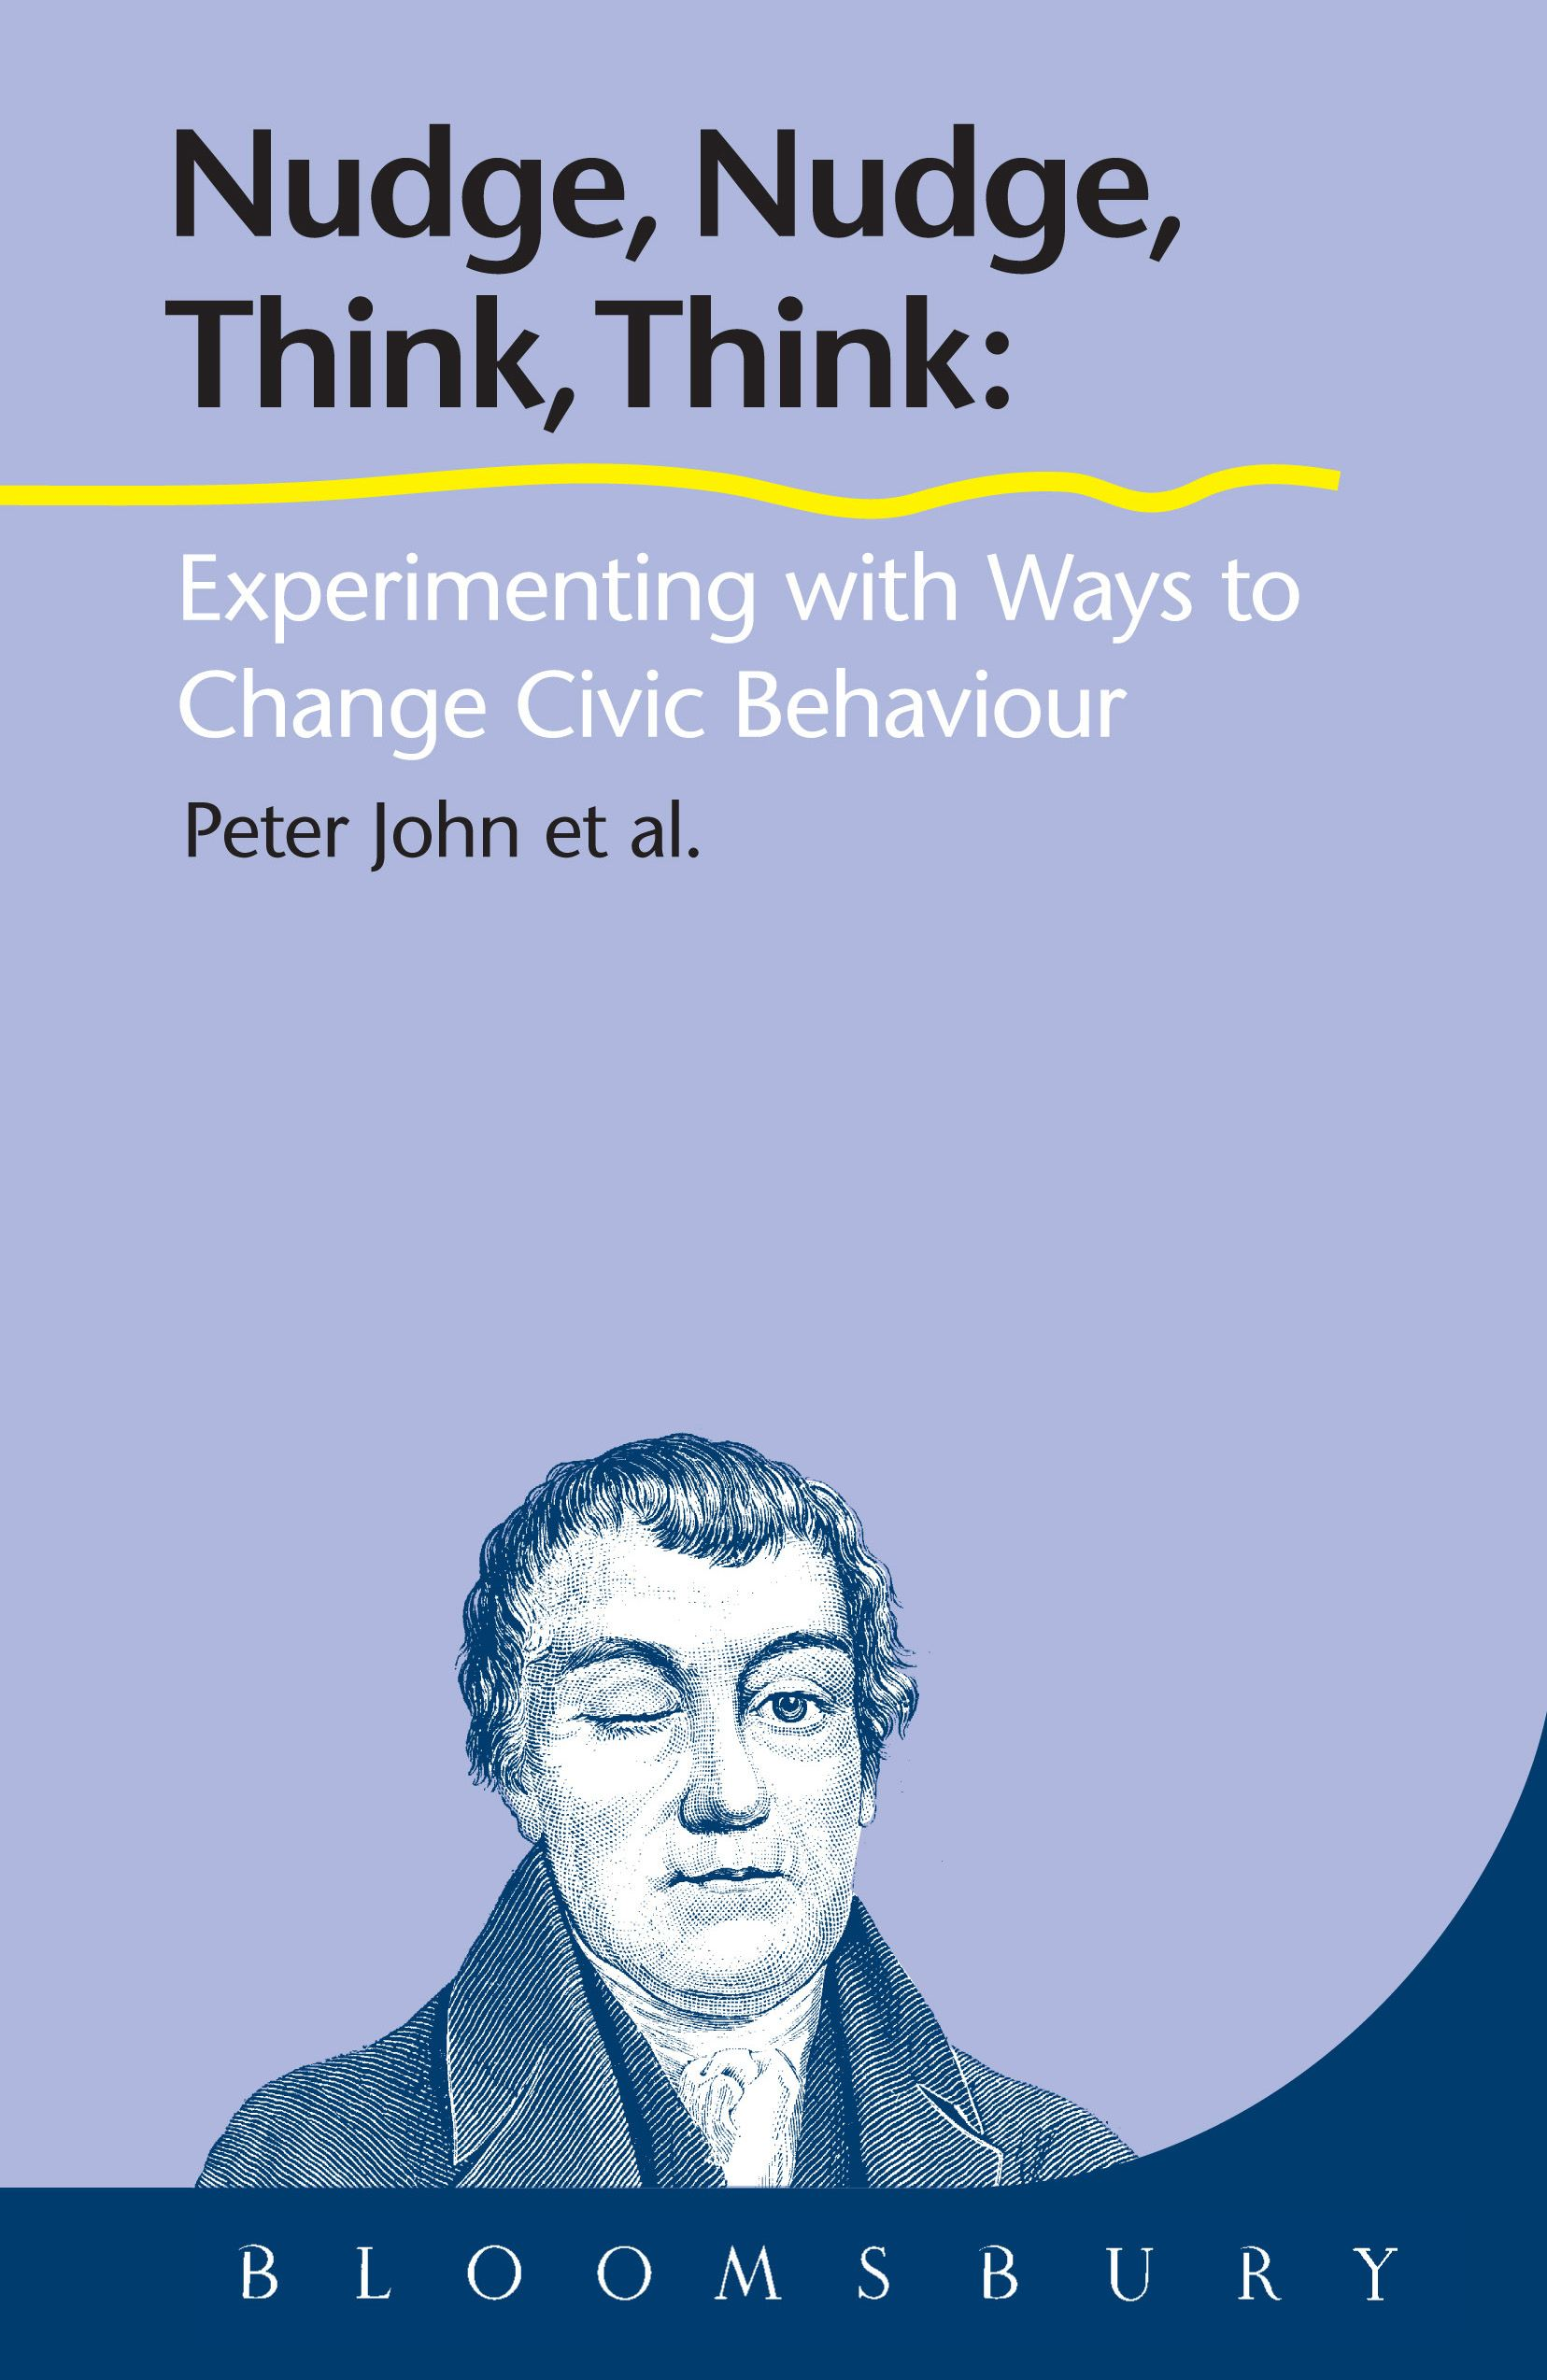 Nudge, Nudge, Think, Think: Using Experiments to Change Civic Behaviour